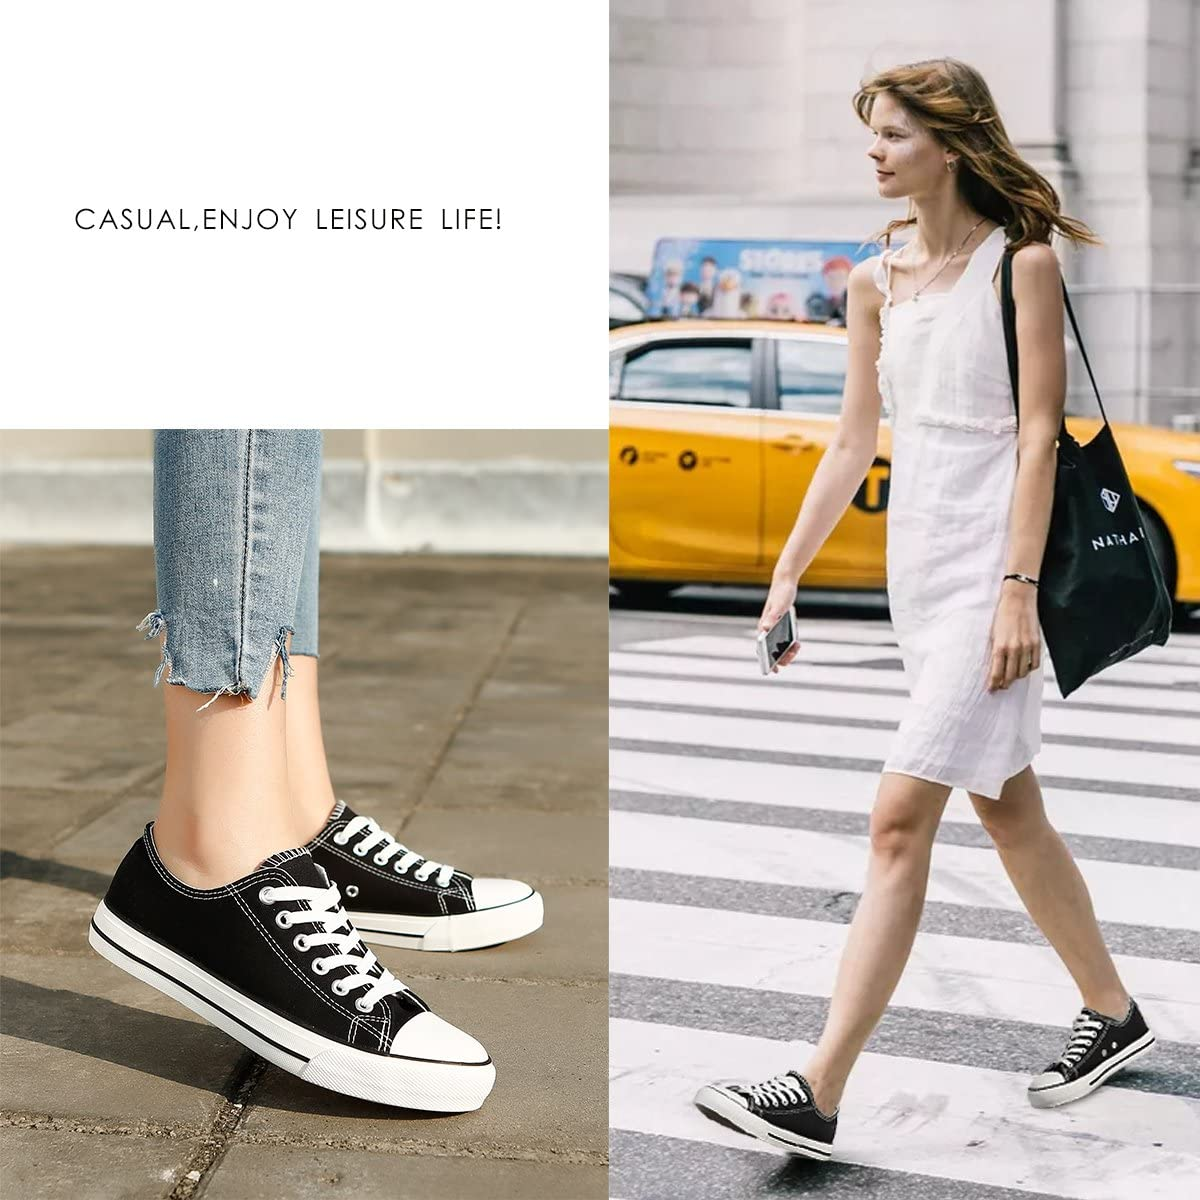 ZGR Women/'s Canvas Low Top Sneaker Lace-up Classic Casual Shoes Black and White